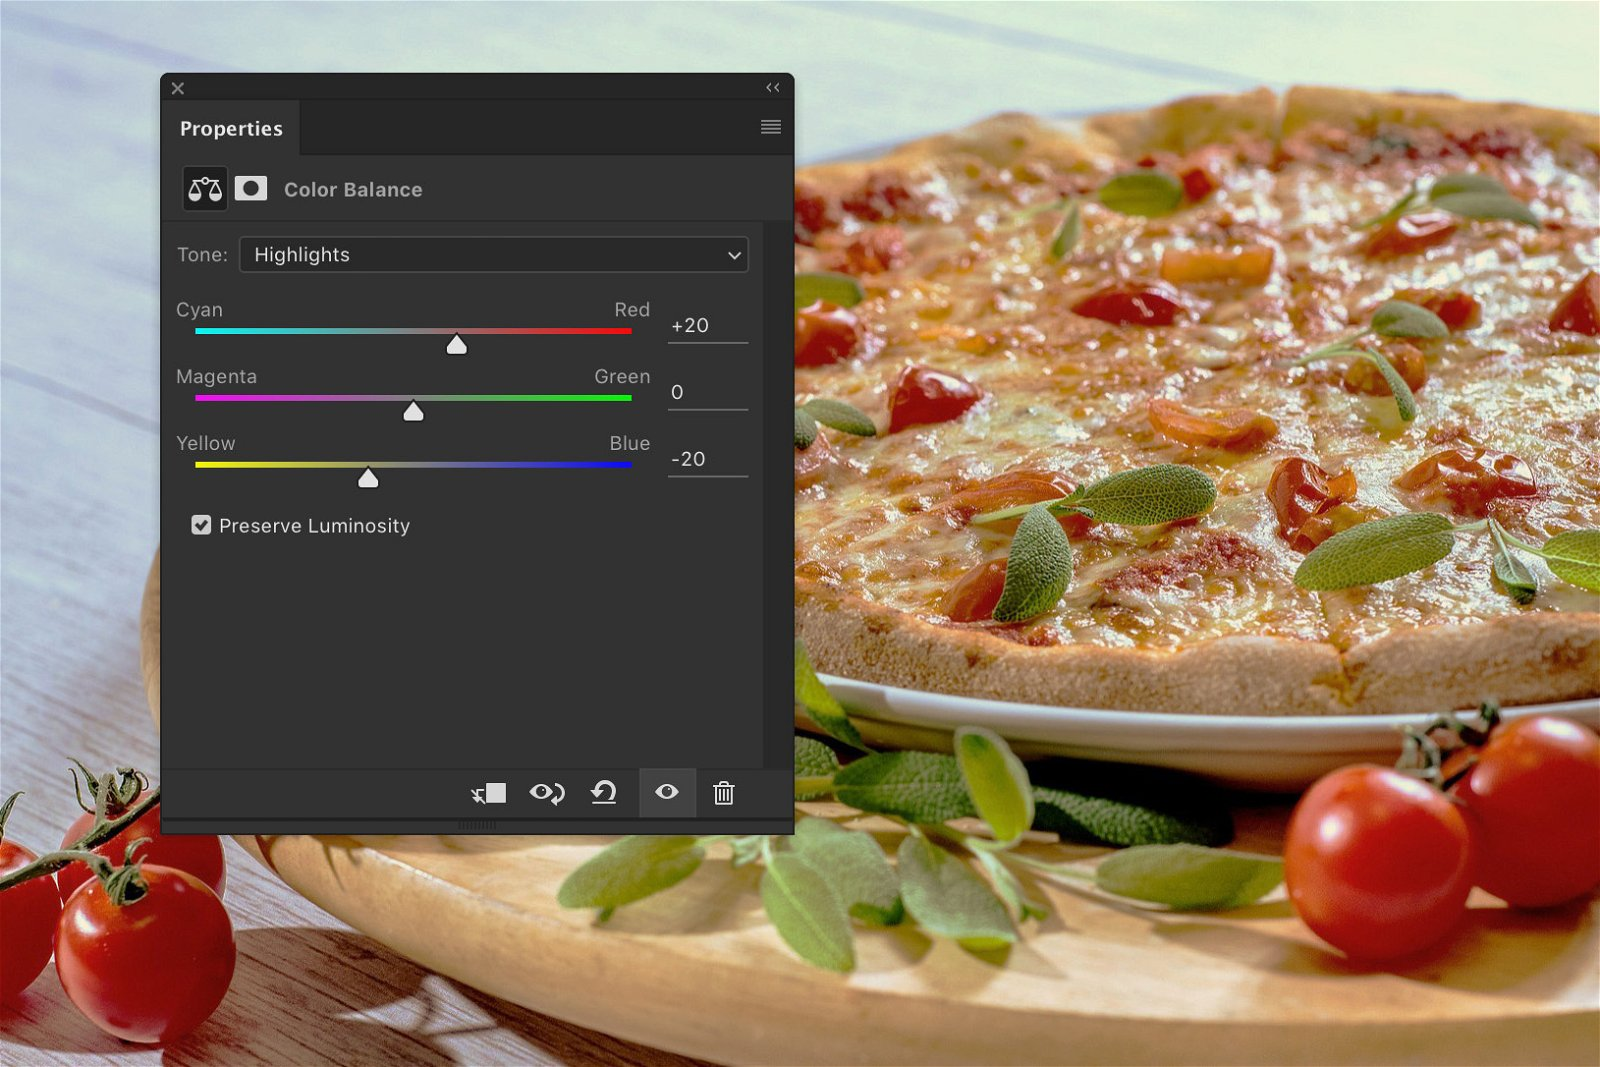 A screenshot showing how to edit food photography in Photoshop - highlights